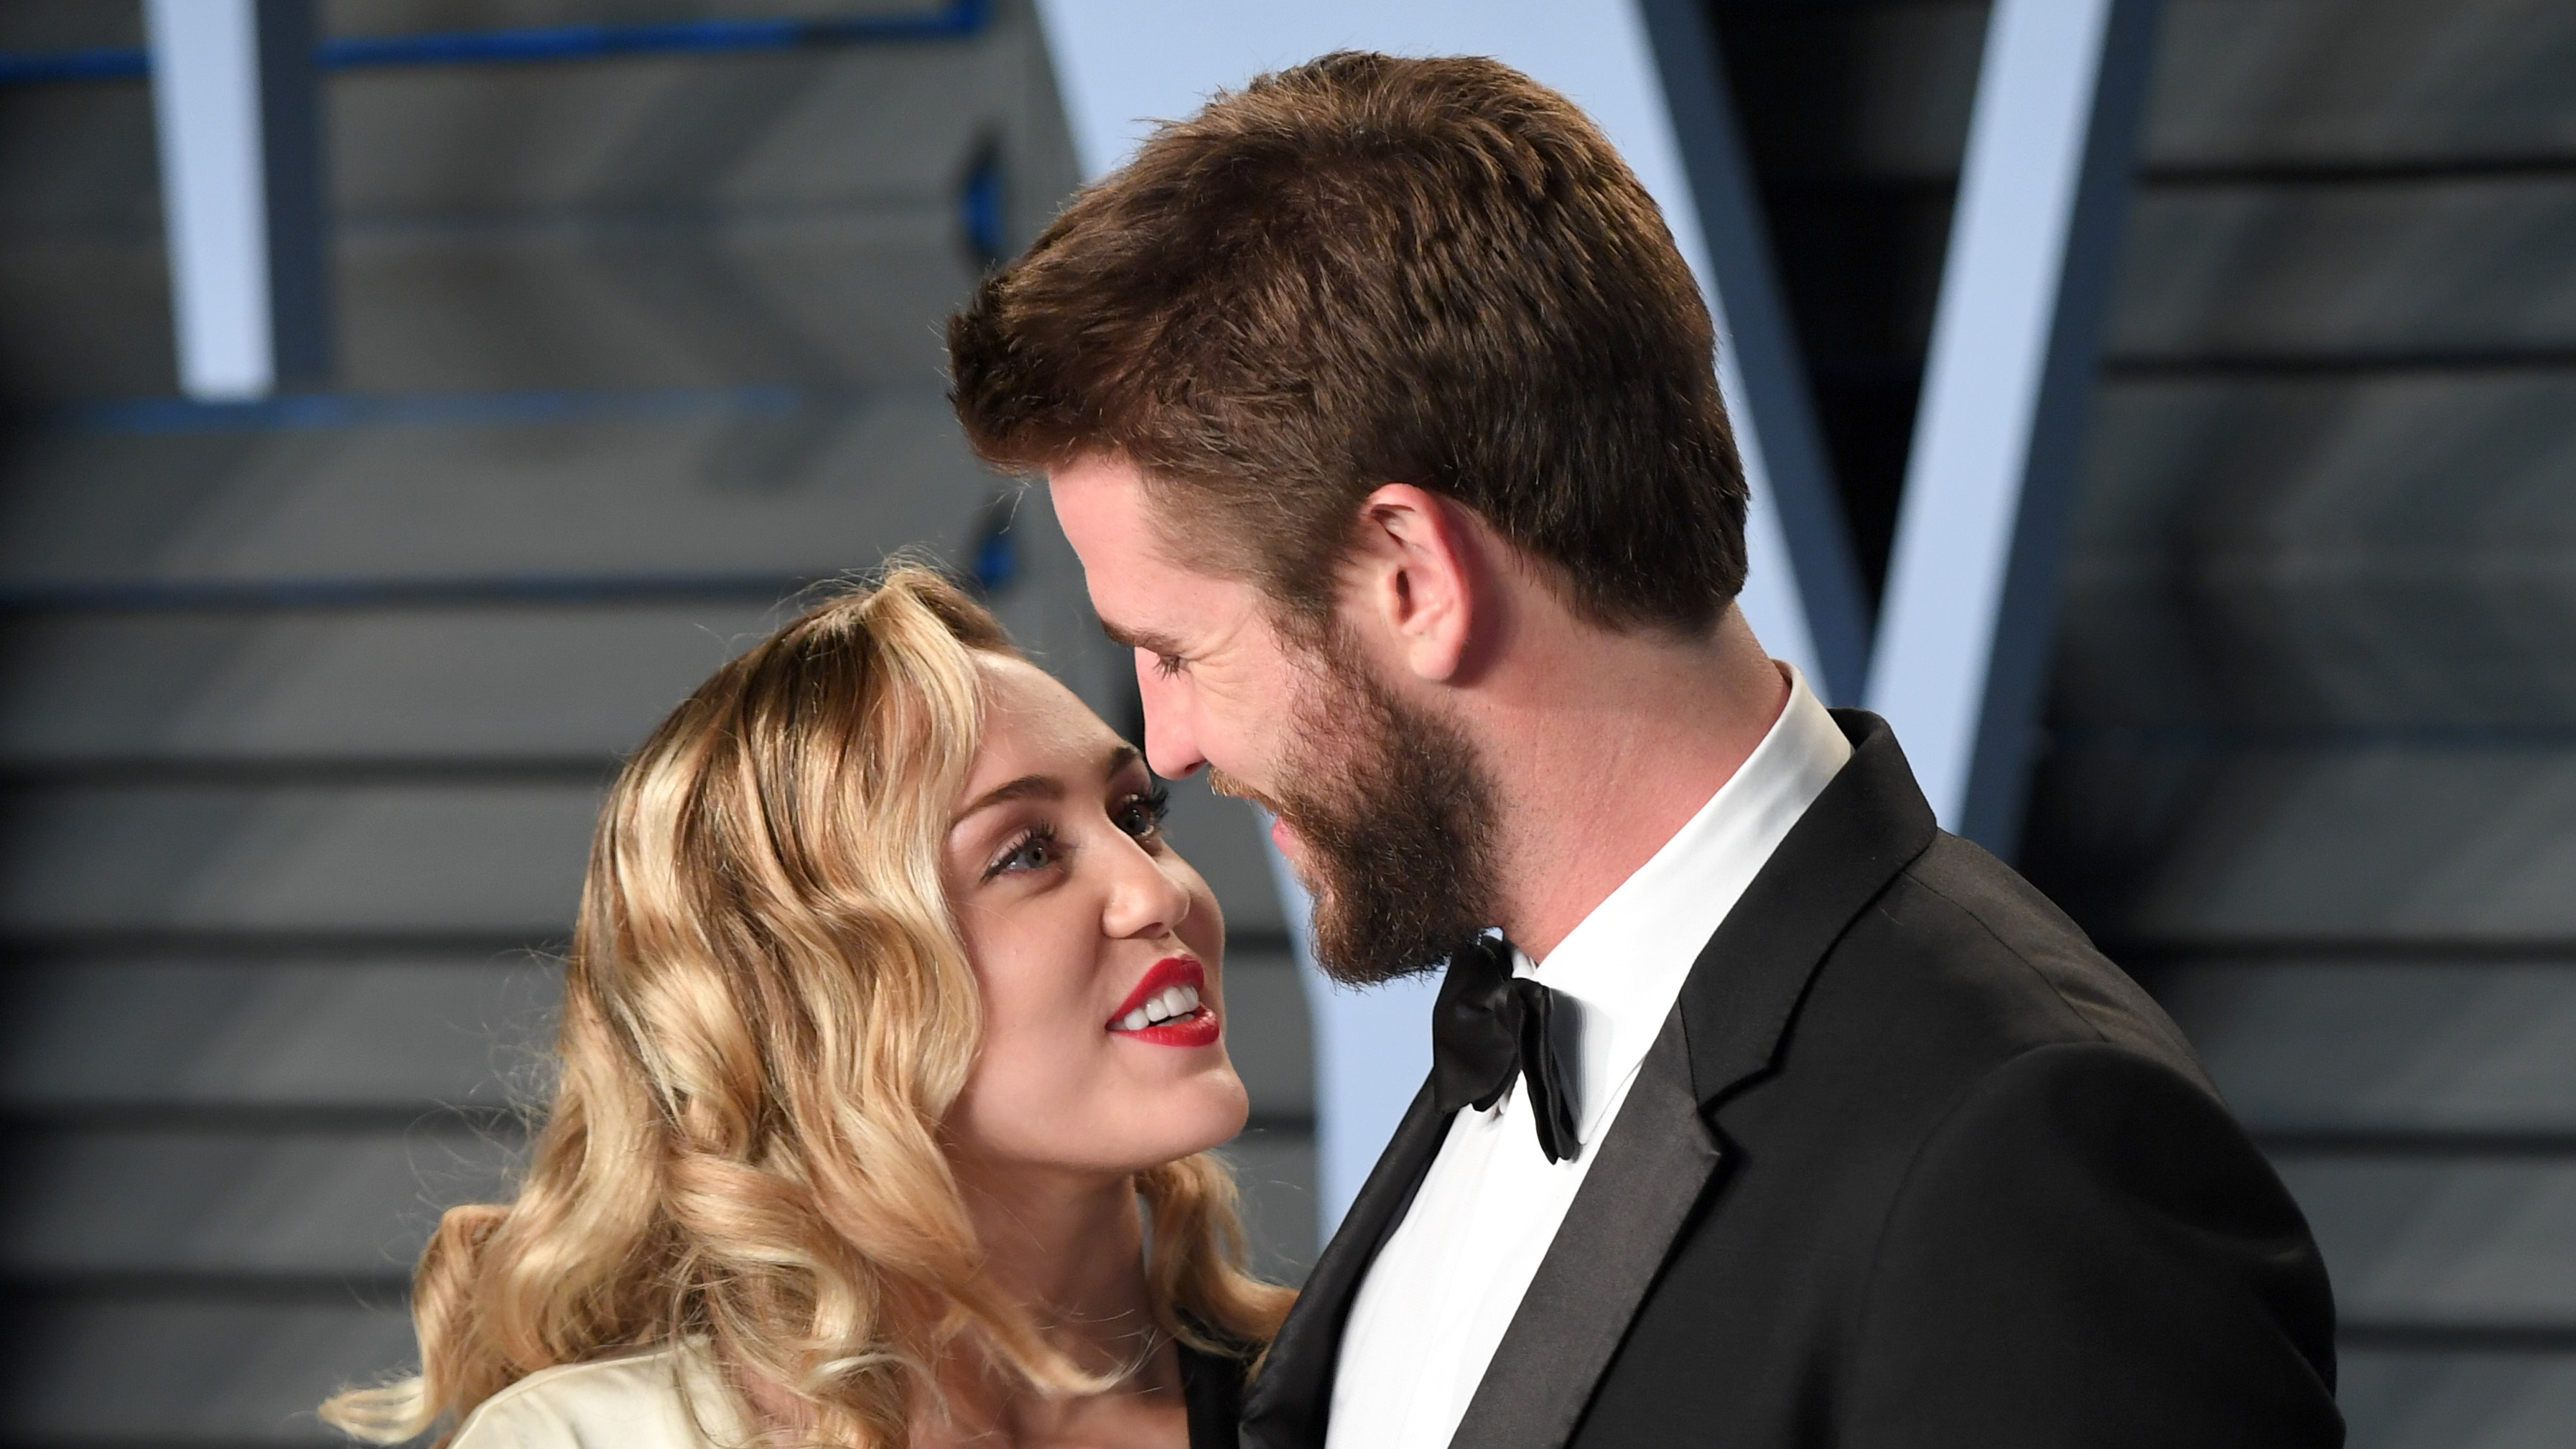 Miley Cyrus shares love letter to husband Liam Hemsworth ...